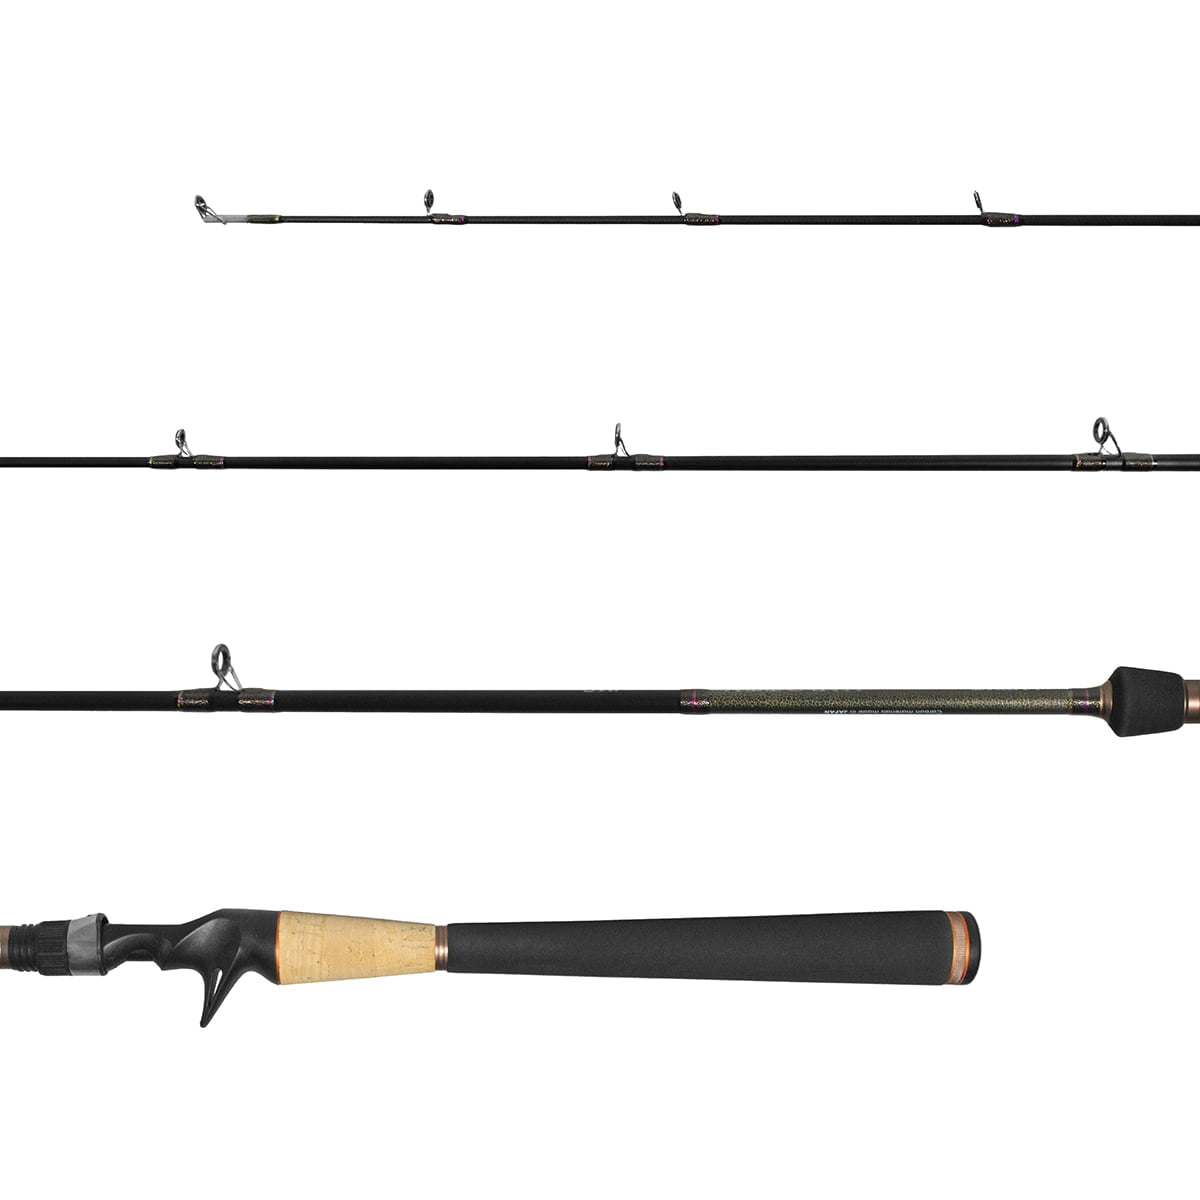 Virotty Cast 6-15 lb / 5'6 Pés (1,68m) - Lumis